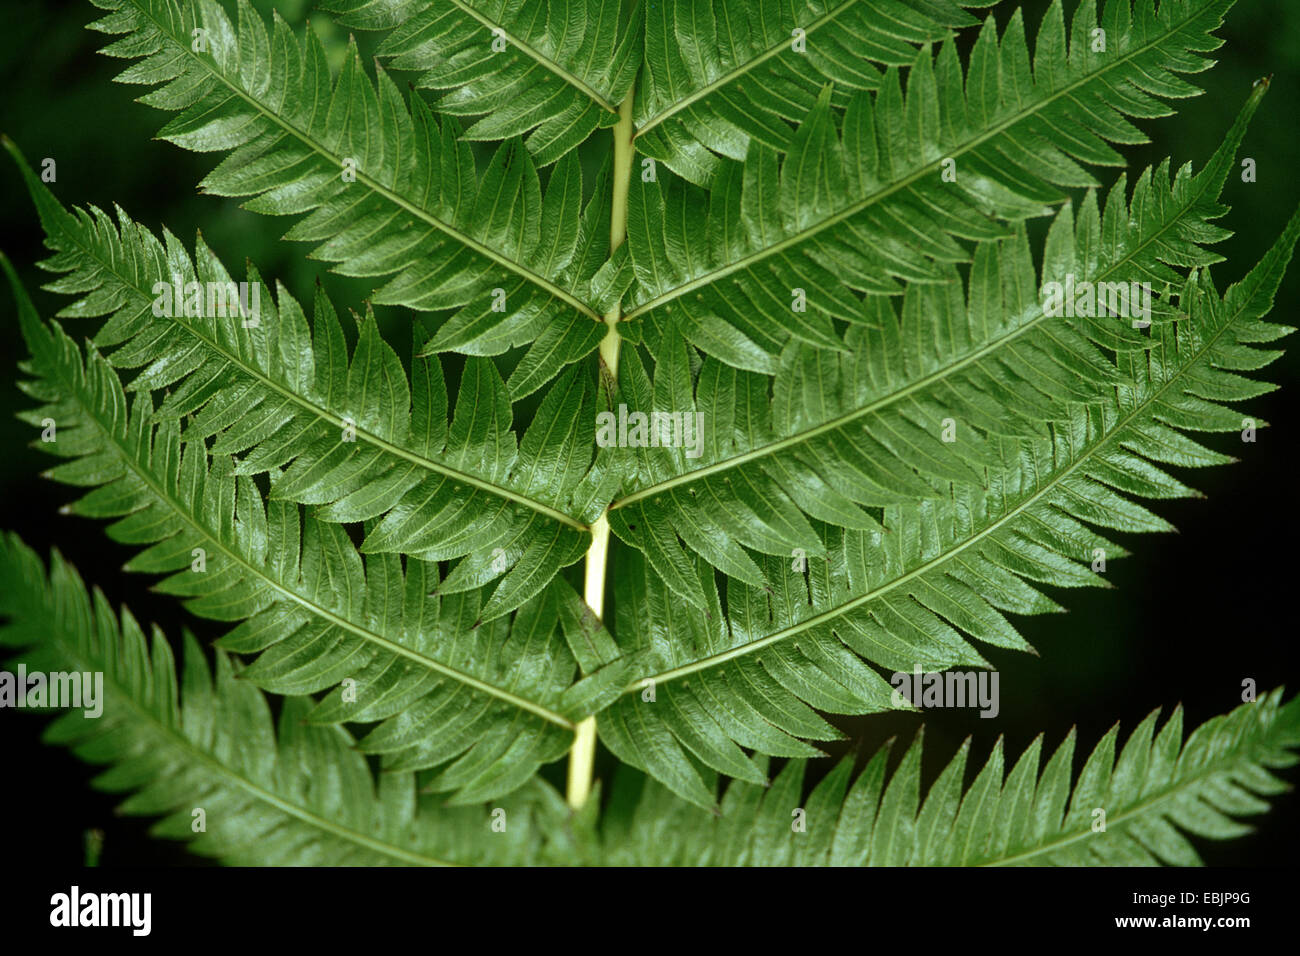 Rooting Chainfern (Woodwardia radicans), leaflets - Stock Image